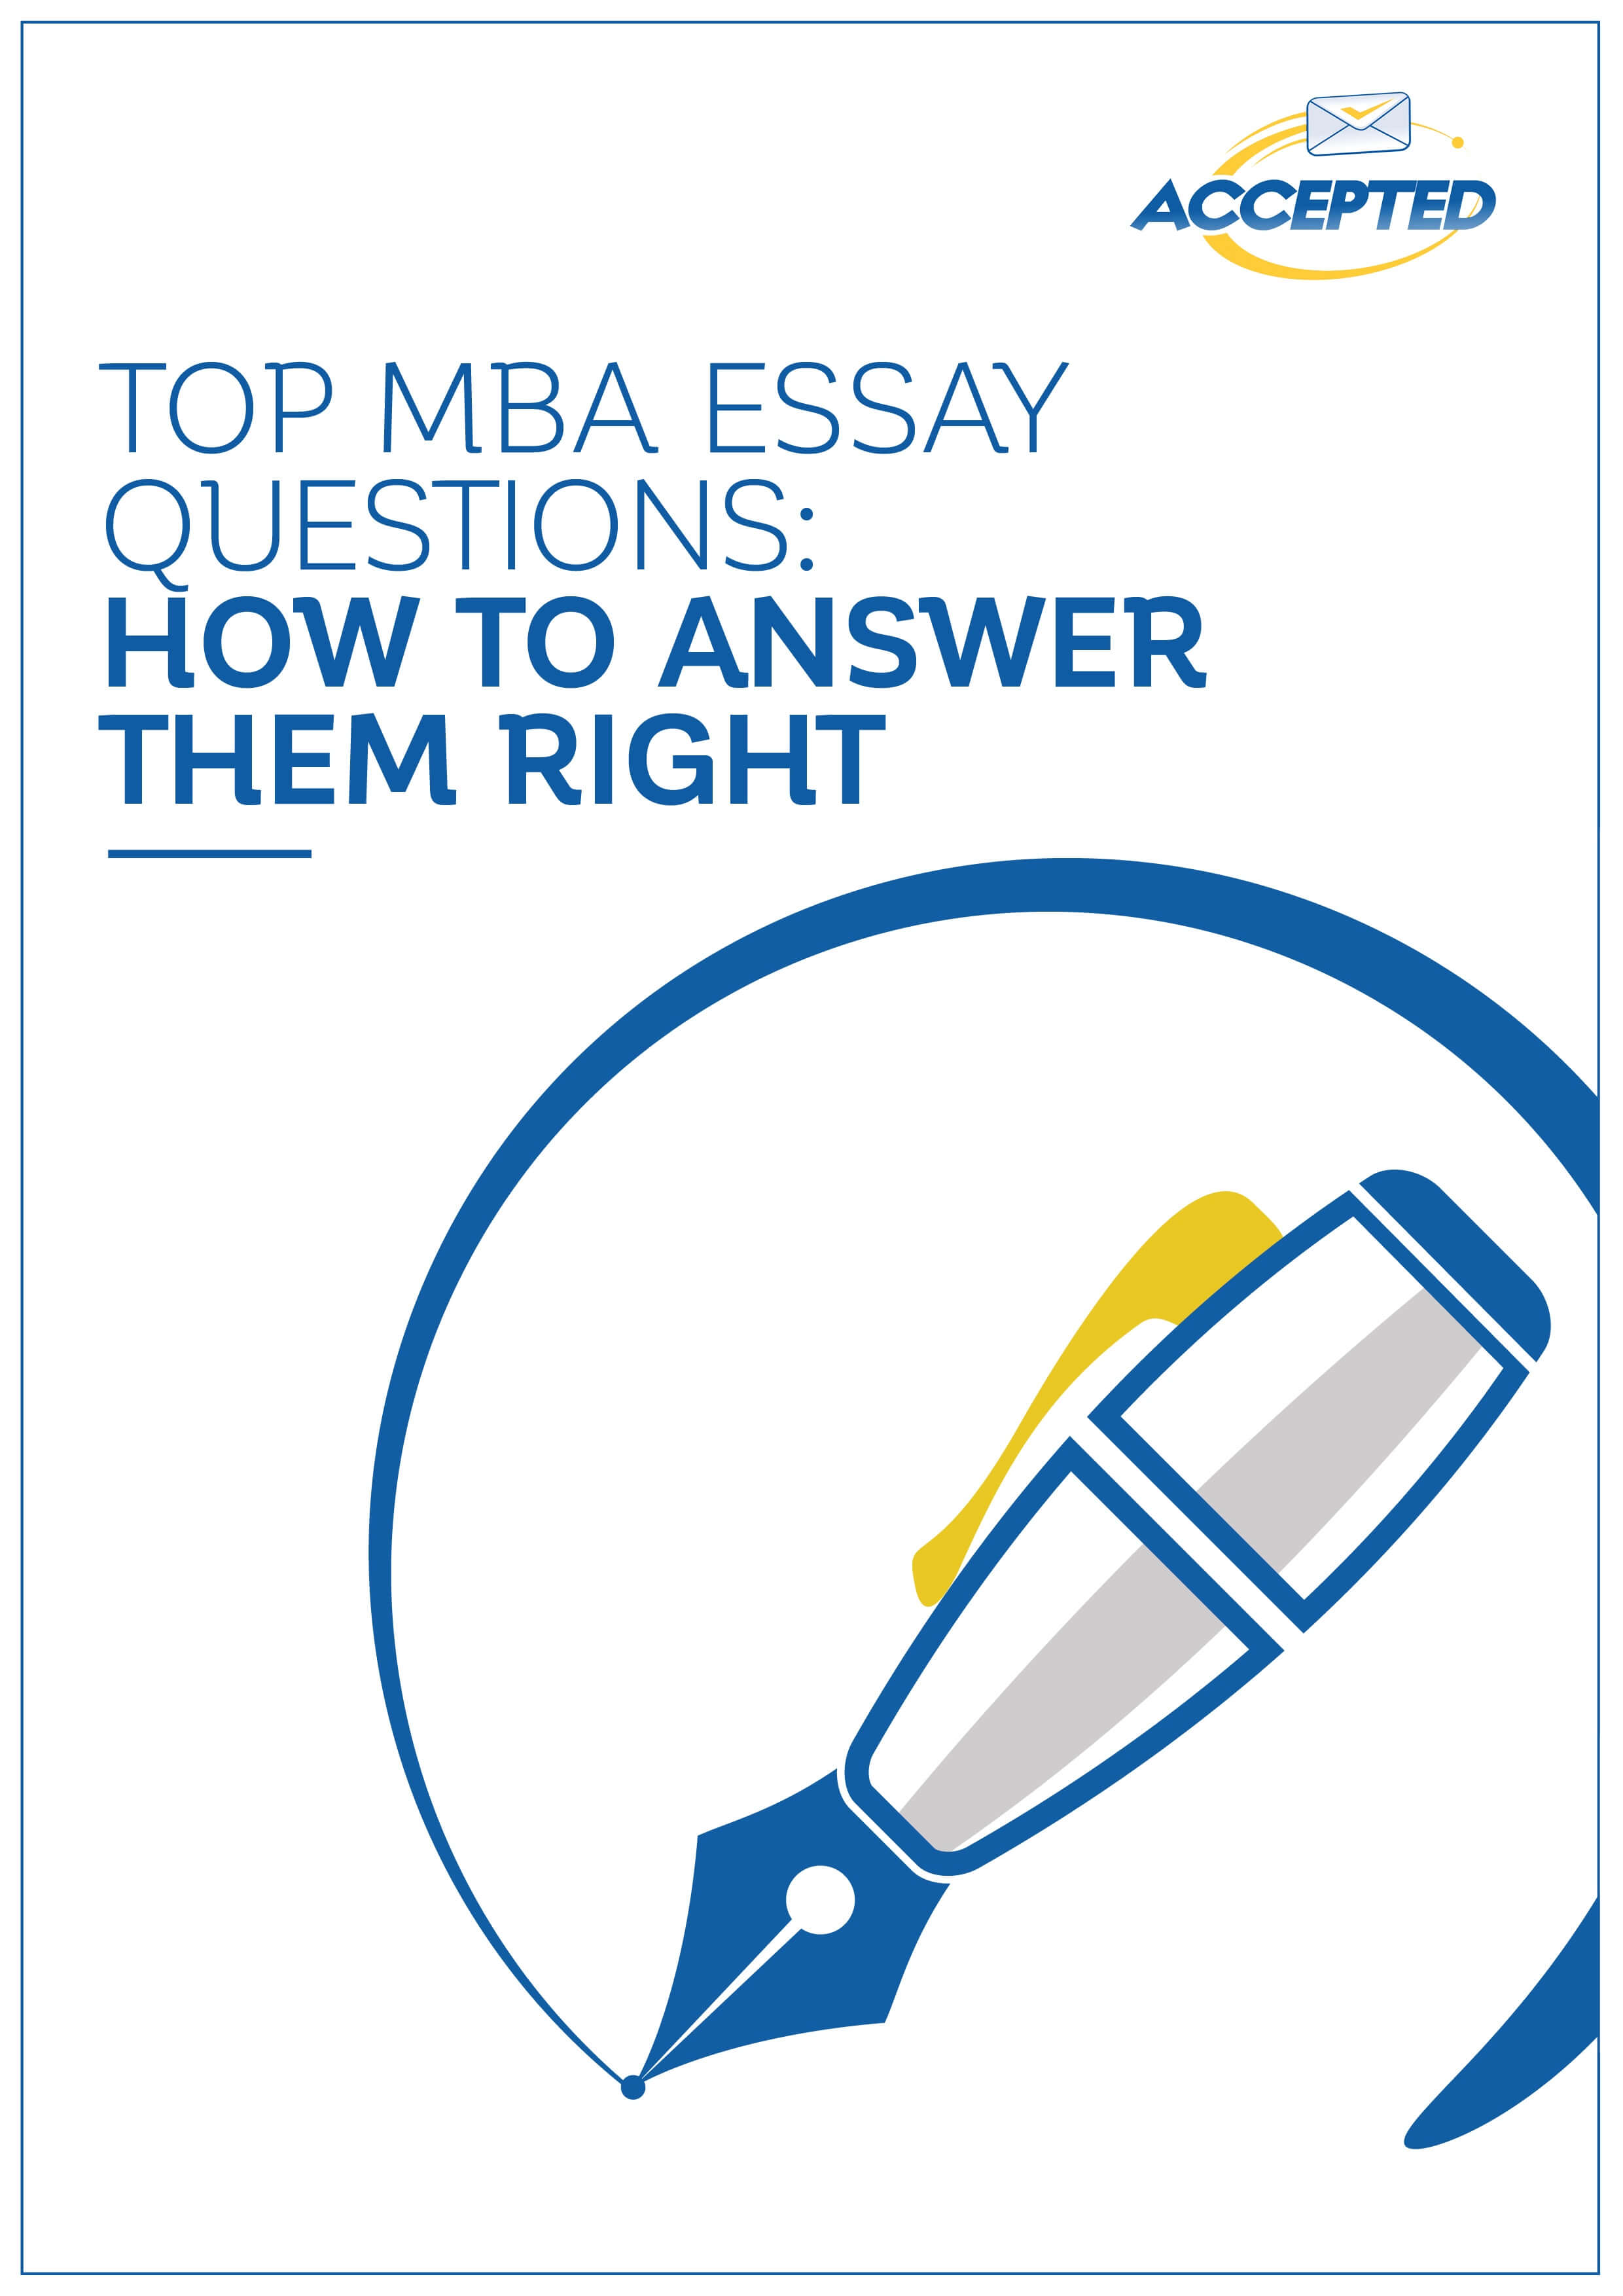 List of MBA Essay Questions from the World's Top Business Schools.